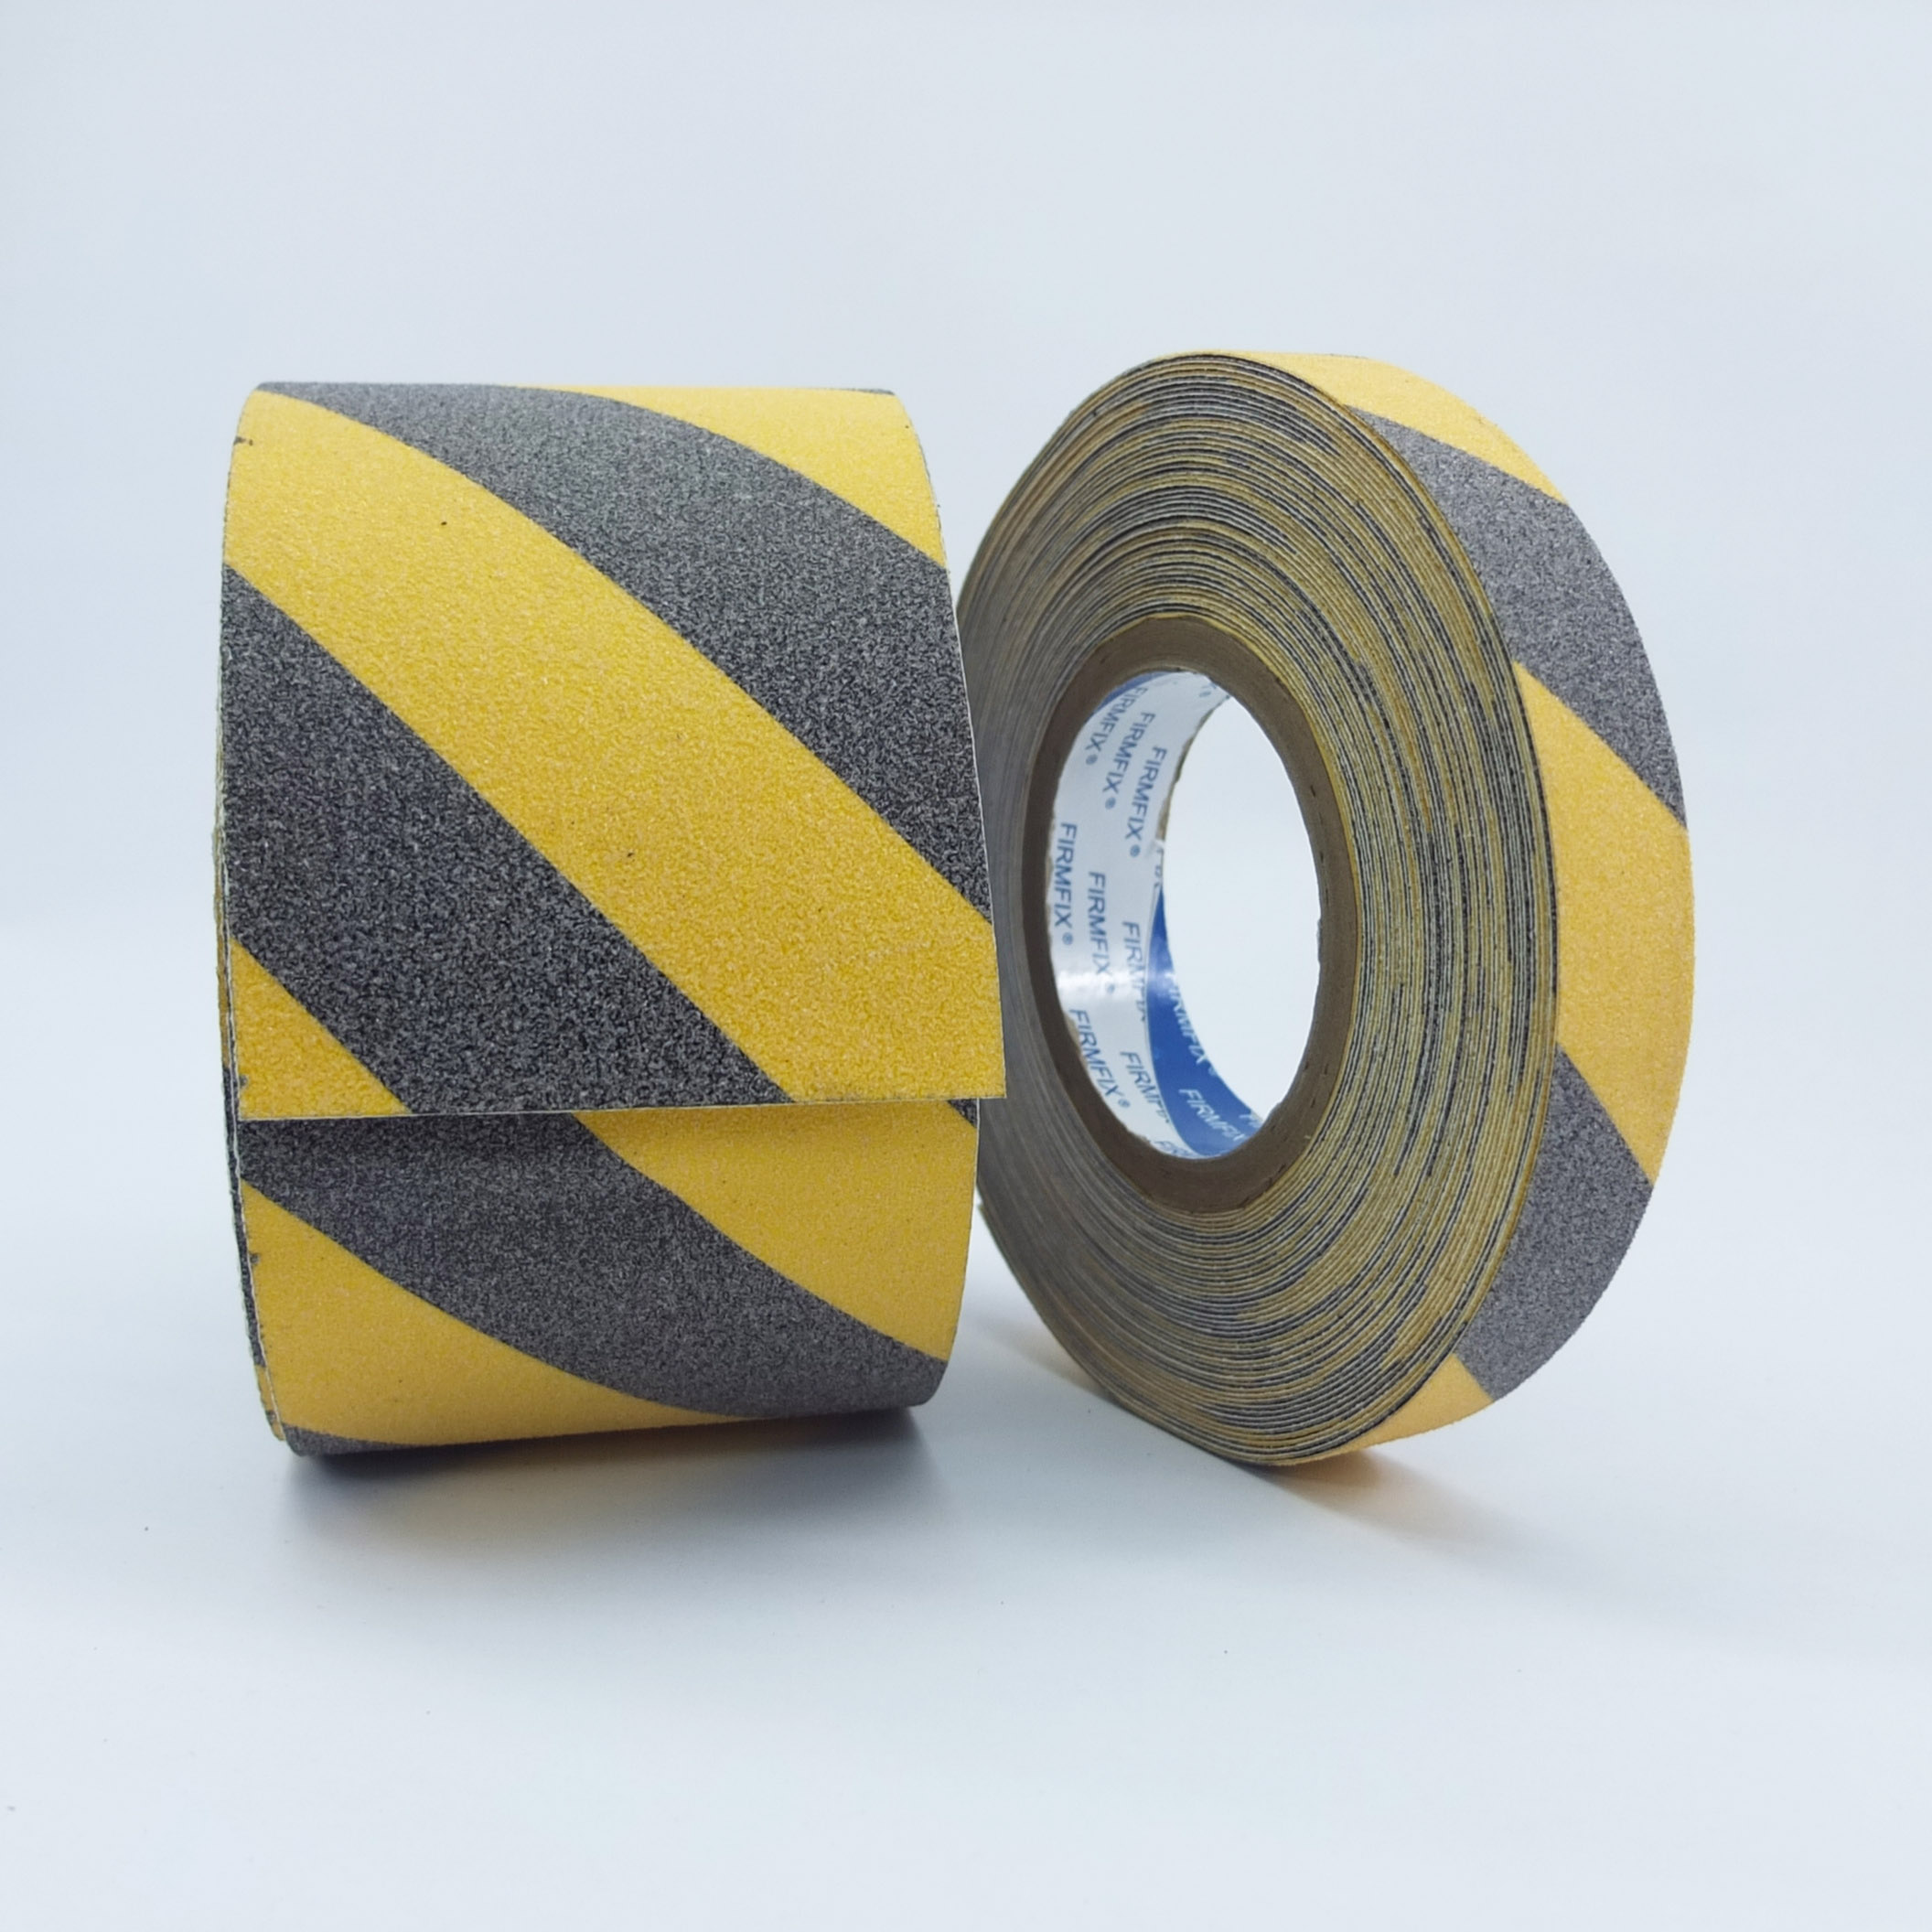 FIRMFIX Anti-slip Tape Yellow/Black